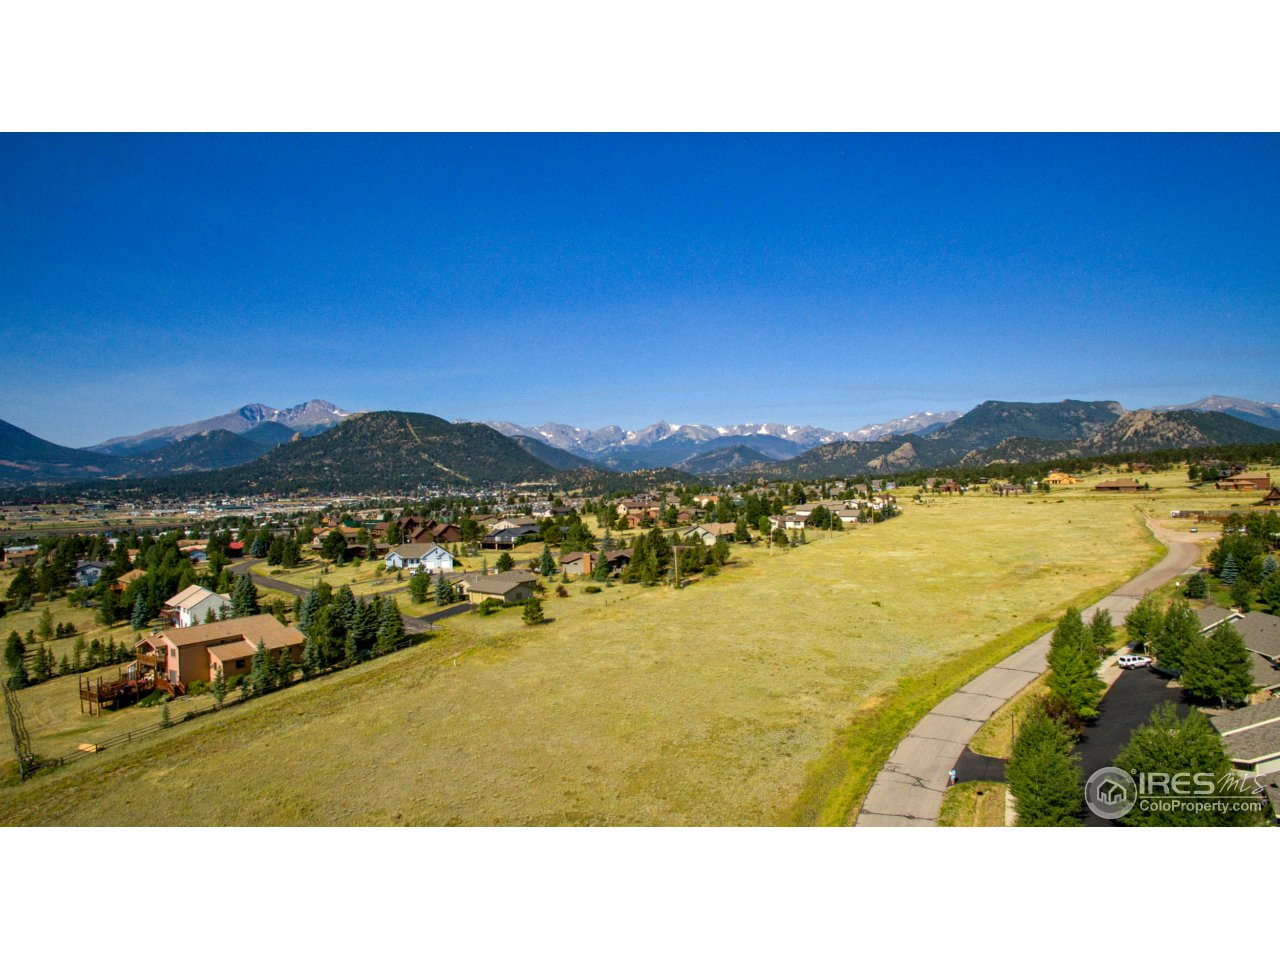 Rare offering on the North end of the Estes Valley! One of the last remaining parcels of this size close to town. 9.54 absolutely stunning acres on Wildfire Road.  Offers outstanding mountain views of Lumpy Ridge & the Continental Divide.  Calling all ranchers...18 horses allowed.  Or a developer's dream! Ability to subdivide into 14-15 single family lots, one single family dwelling per 1/2 acre. Call today to visit about this exciting opportunity, this won't last long!